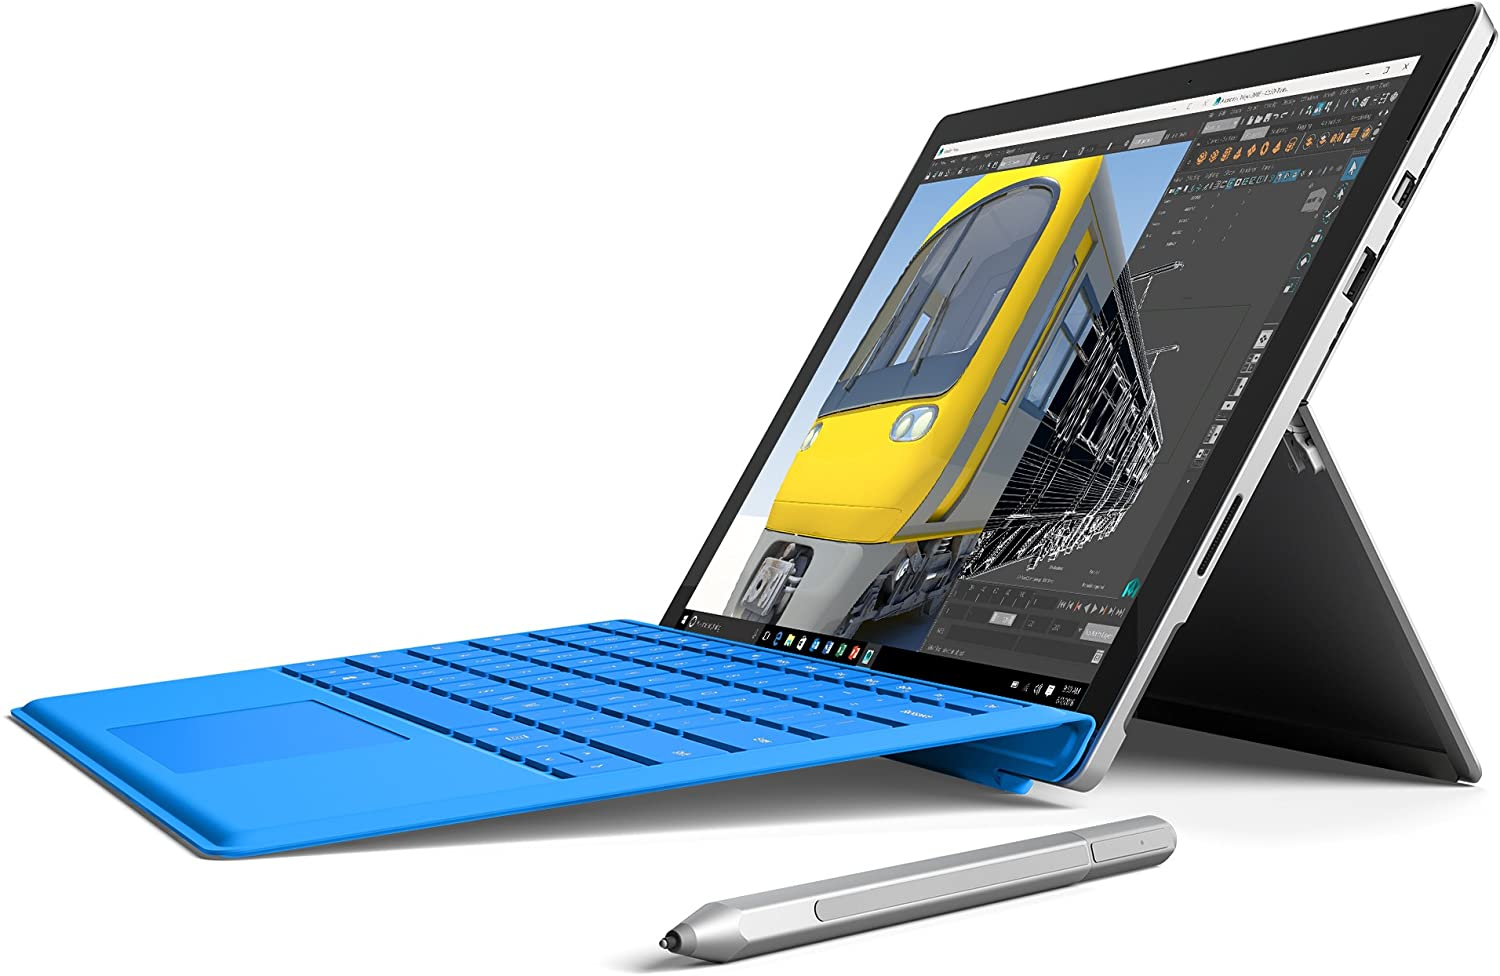 You have Option to choose Intel or AMD processors in Microsoft's new Surface Laptop 4. The Surface Laptop 4 is available in 13.5-inch and 15-inch models, similar to its predecessor, but customers will be able to choose between Intel's 11th Gen processors and custom AMD Ryzen processors designed specifically for the Surface line.